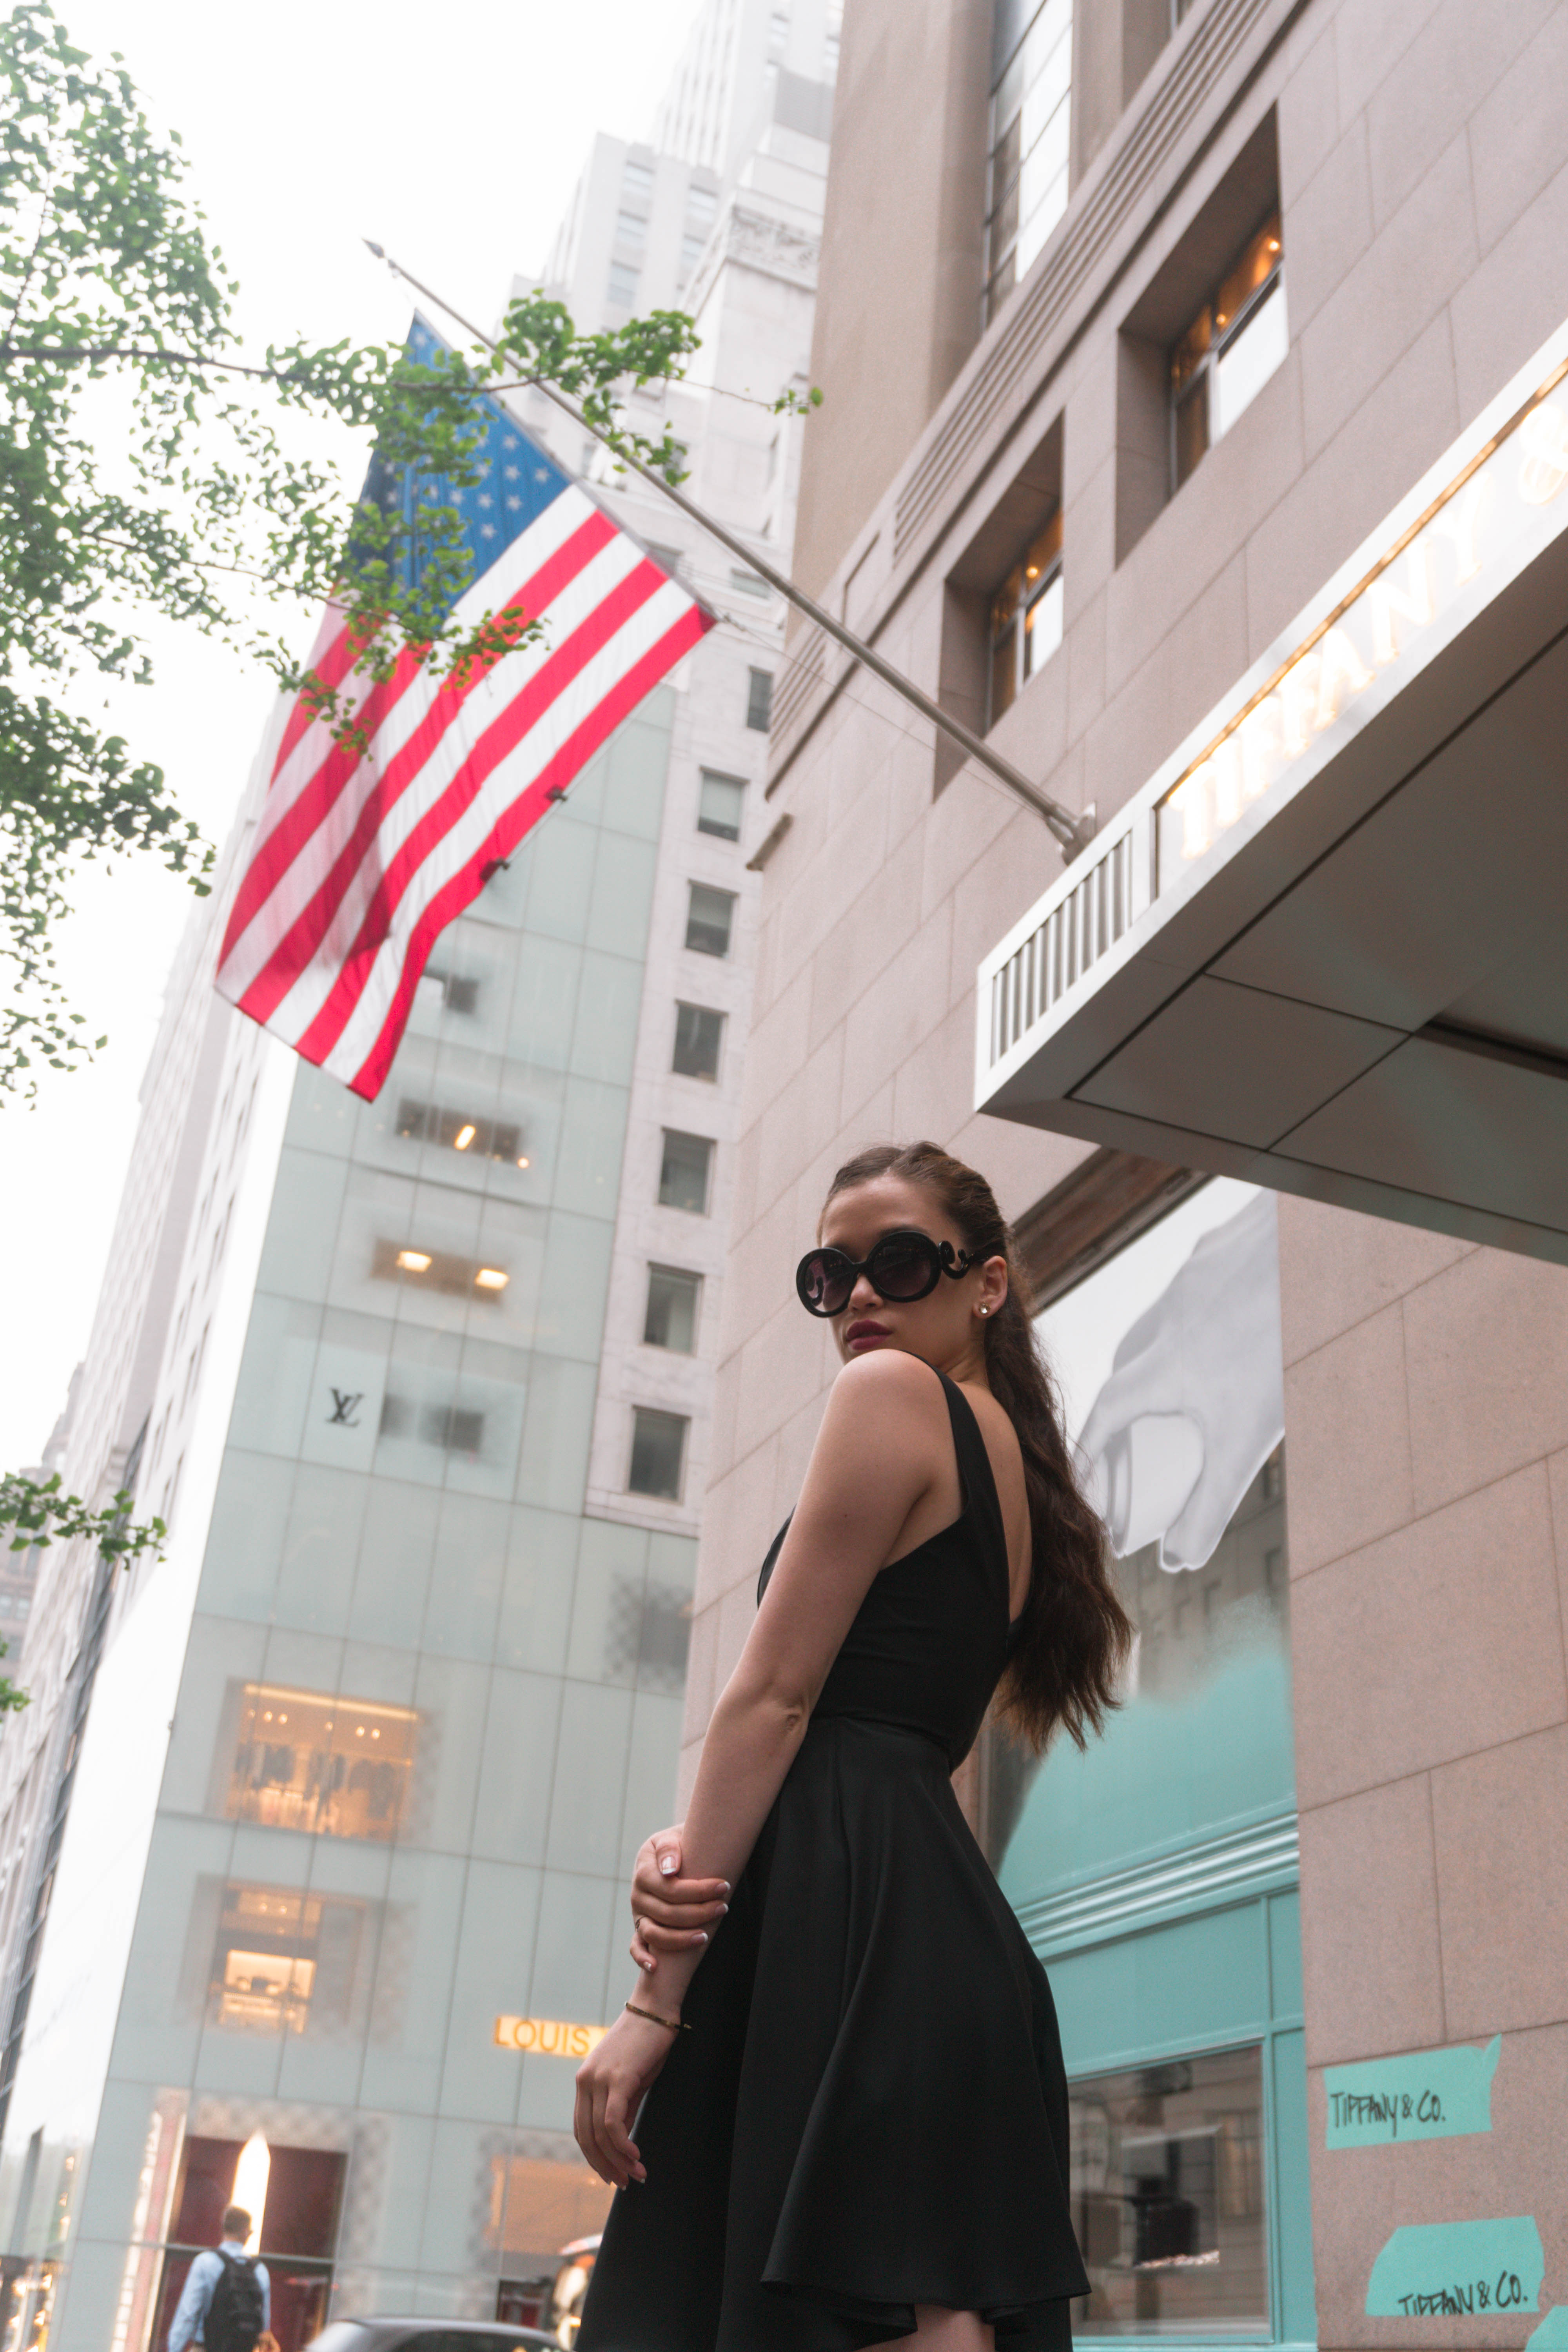 Eva Darling at the 5th ave avenue Tiffany and Co flagship store in manhattan new york NYC city in black amanda uprichard silk lbd little black dress prada baroque sunglasses american flag tiffany blue